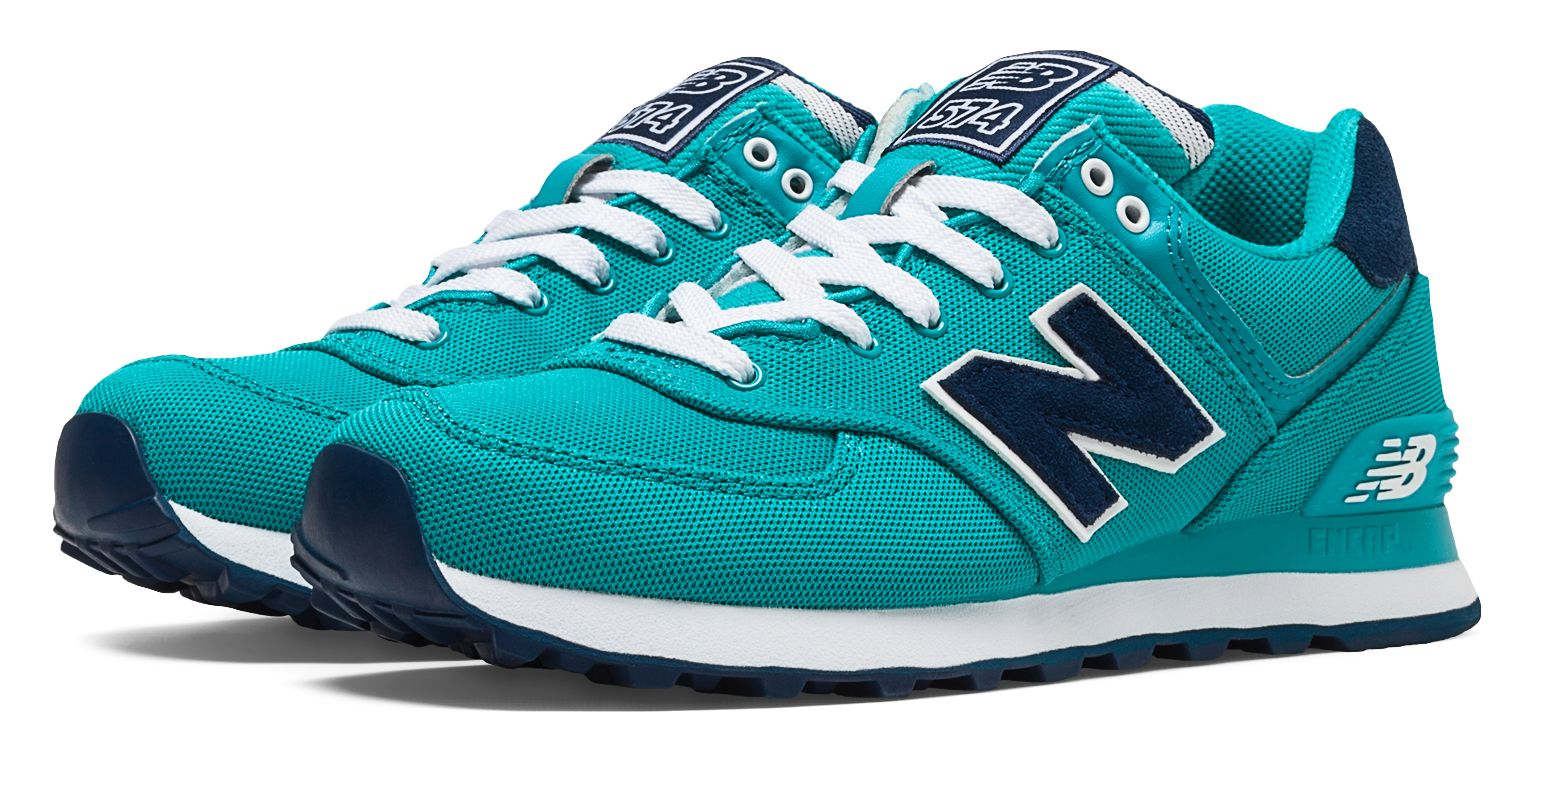 Parity > new balance gris y verde agua, Up to 74% OFF